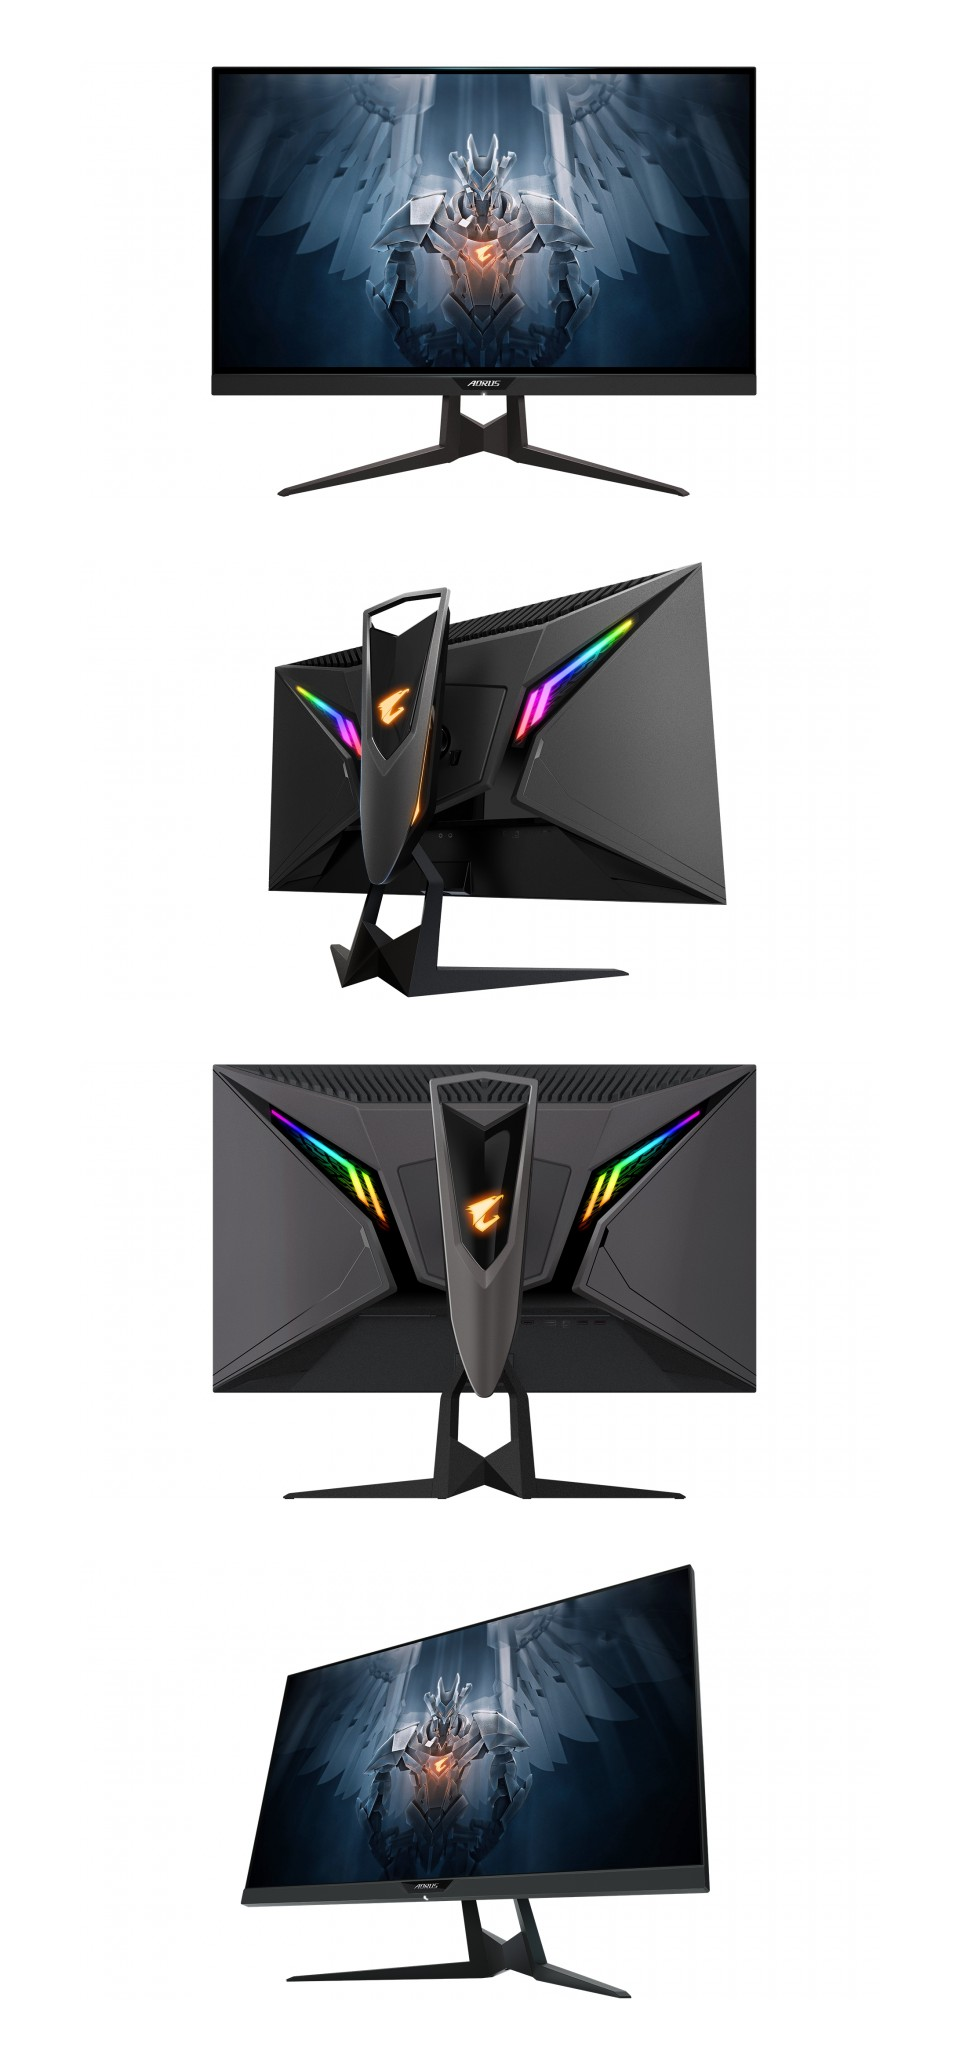 Gigabyte Aorus FI27Q QHD 165Hz FreeSync 27in Monitor product